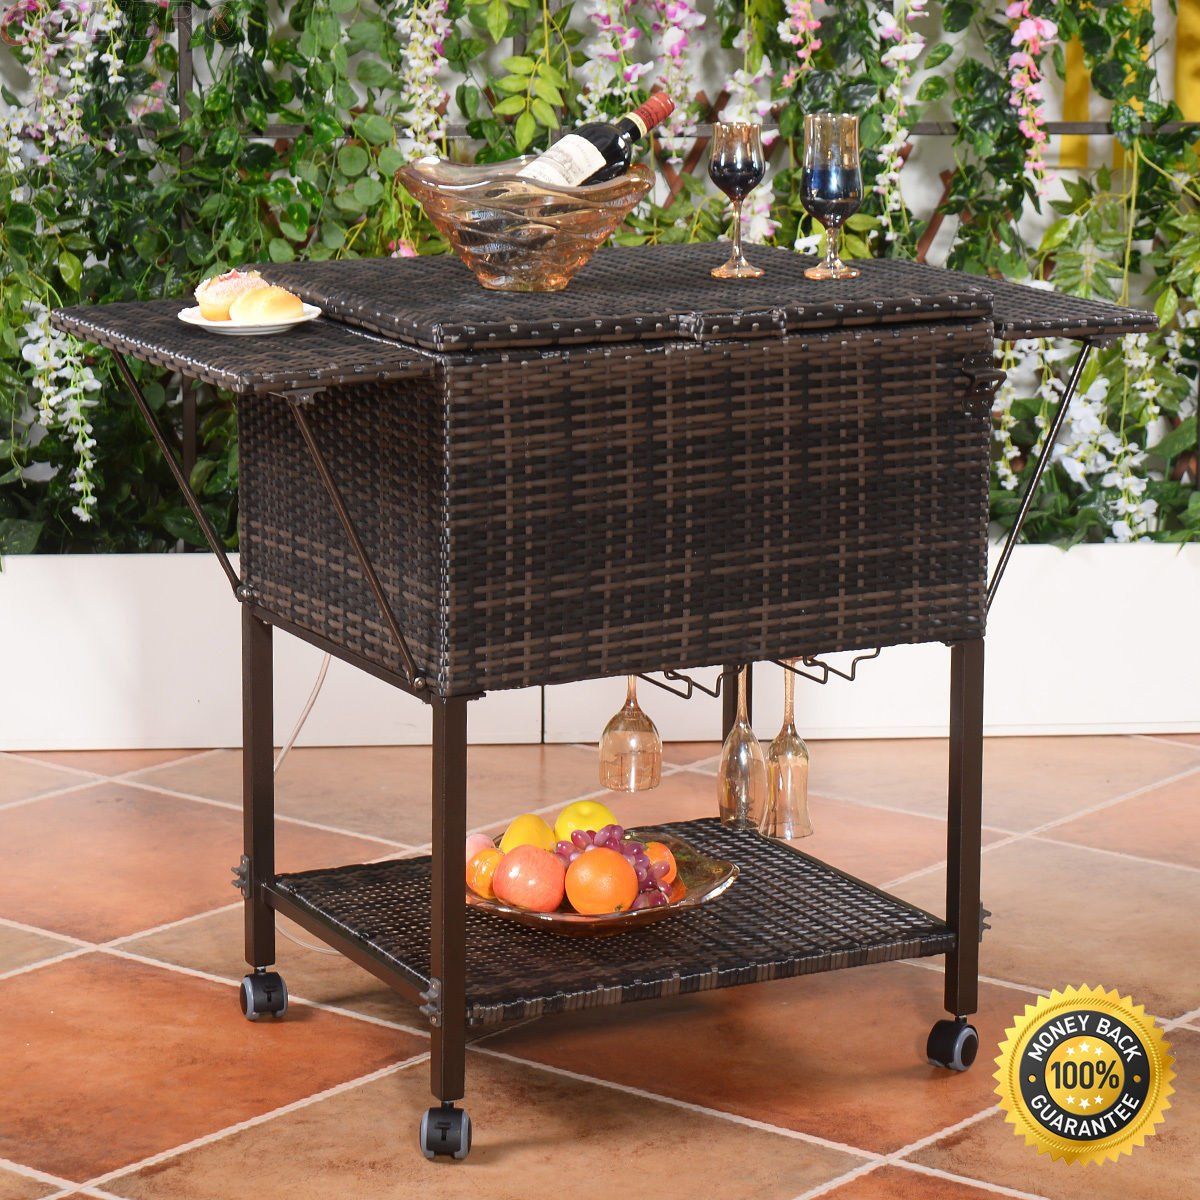 COLIBROX--Portable Rattan Cooler Cart Trolley Outdoor Patio Pool Party Ice Drink Mix Brown. PE Rattan Wicker And Iron Frame Lightweight Yet Durable And Stable Construction, by COLIBROX